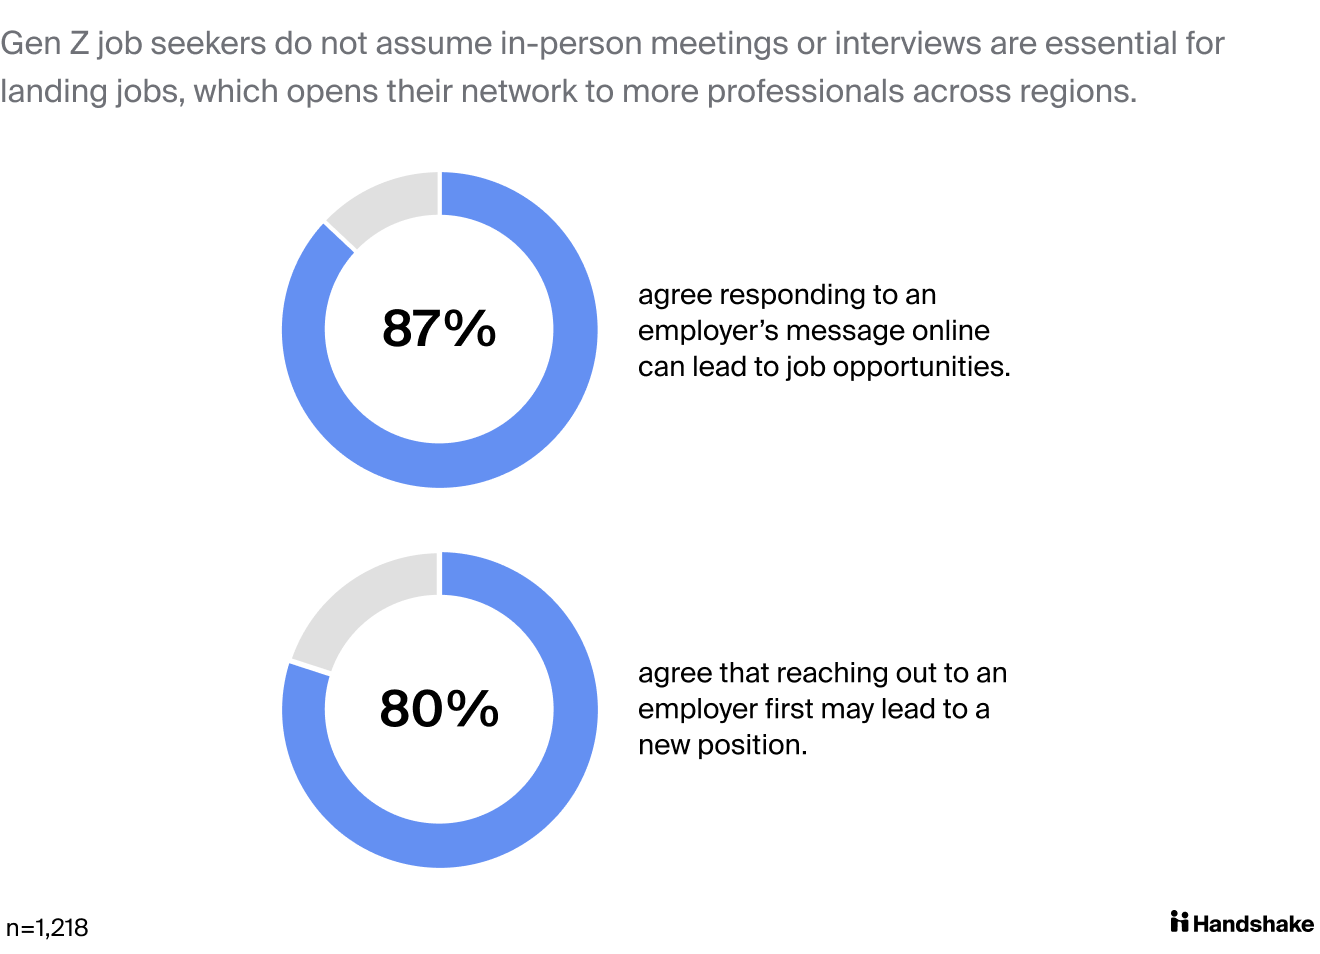 Gen Z job seekers do not assume in-person meetings or interviews are essential for landing jobs, which opens their network to more professionals across regions . When it comes to connections, 87% of Gen Z agrees that responding to an employer's message online can lead to job opportunities and 80% agree that reaching out to an employer first may lead to a new position.